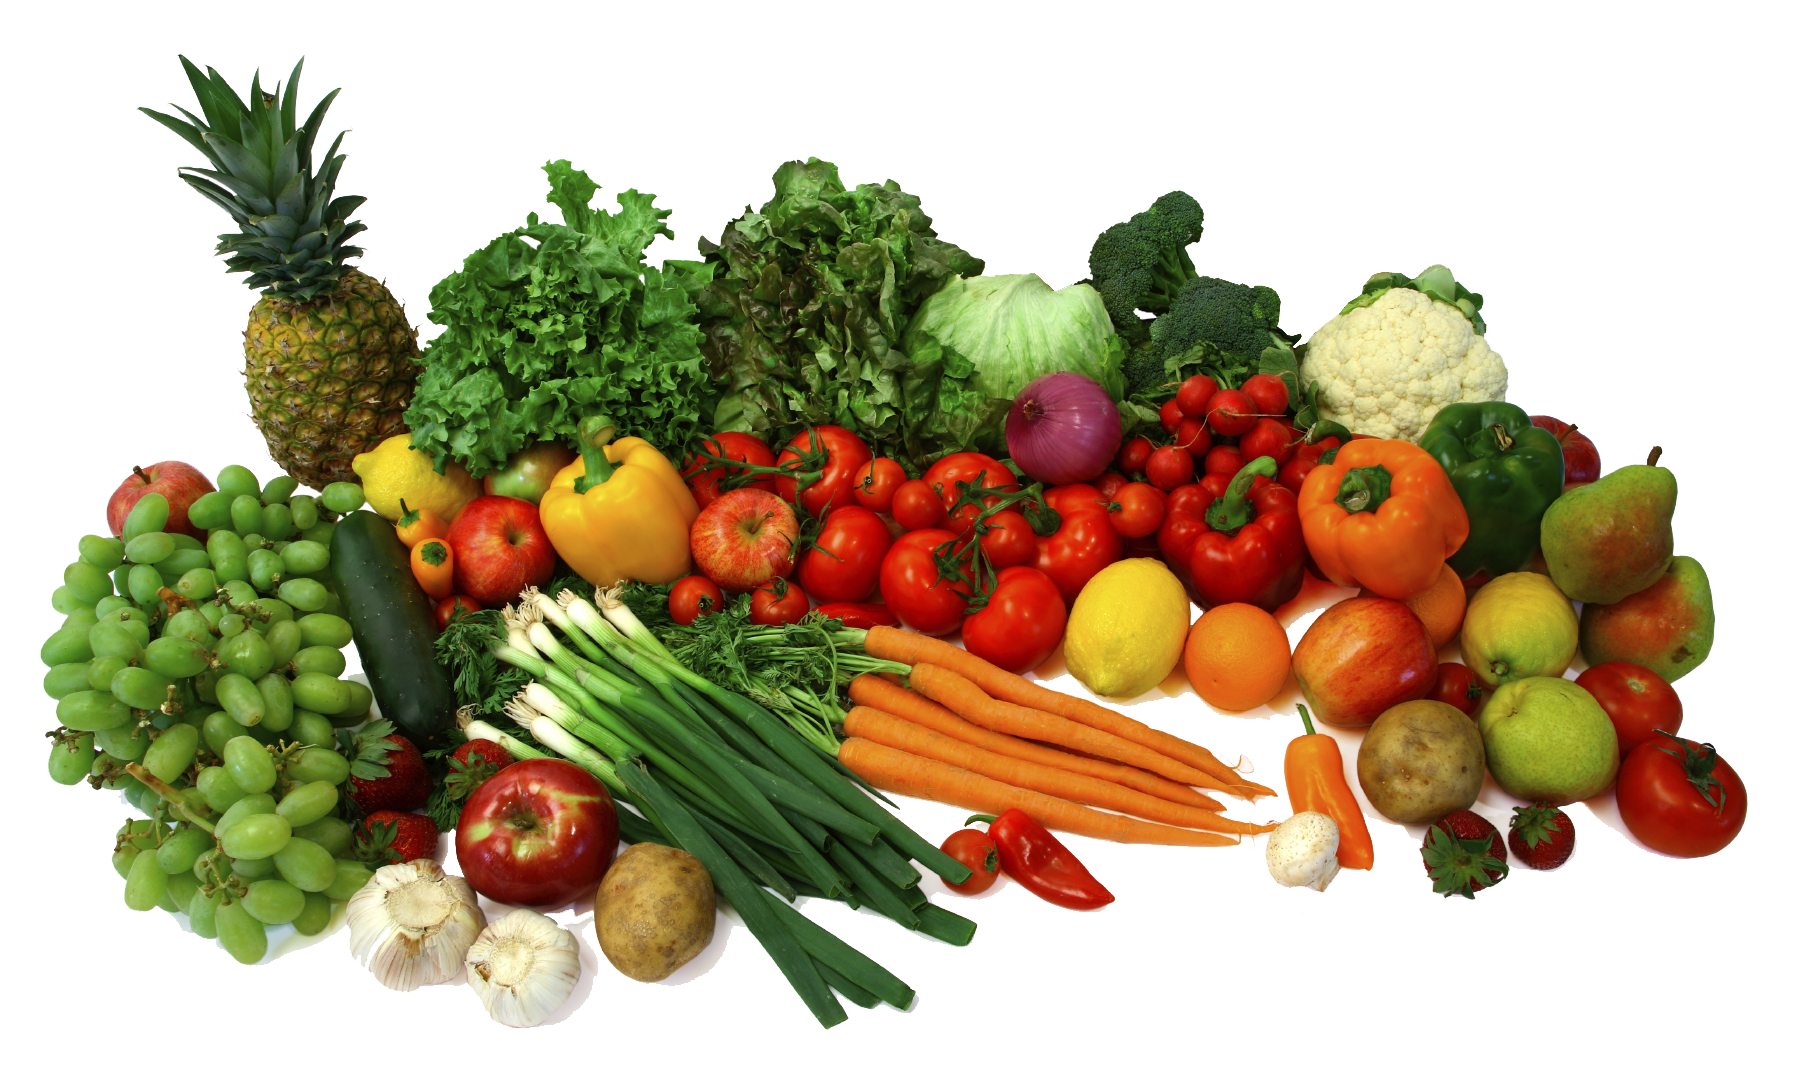 Vegetables png images. Fruits and hd transparent